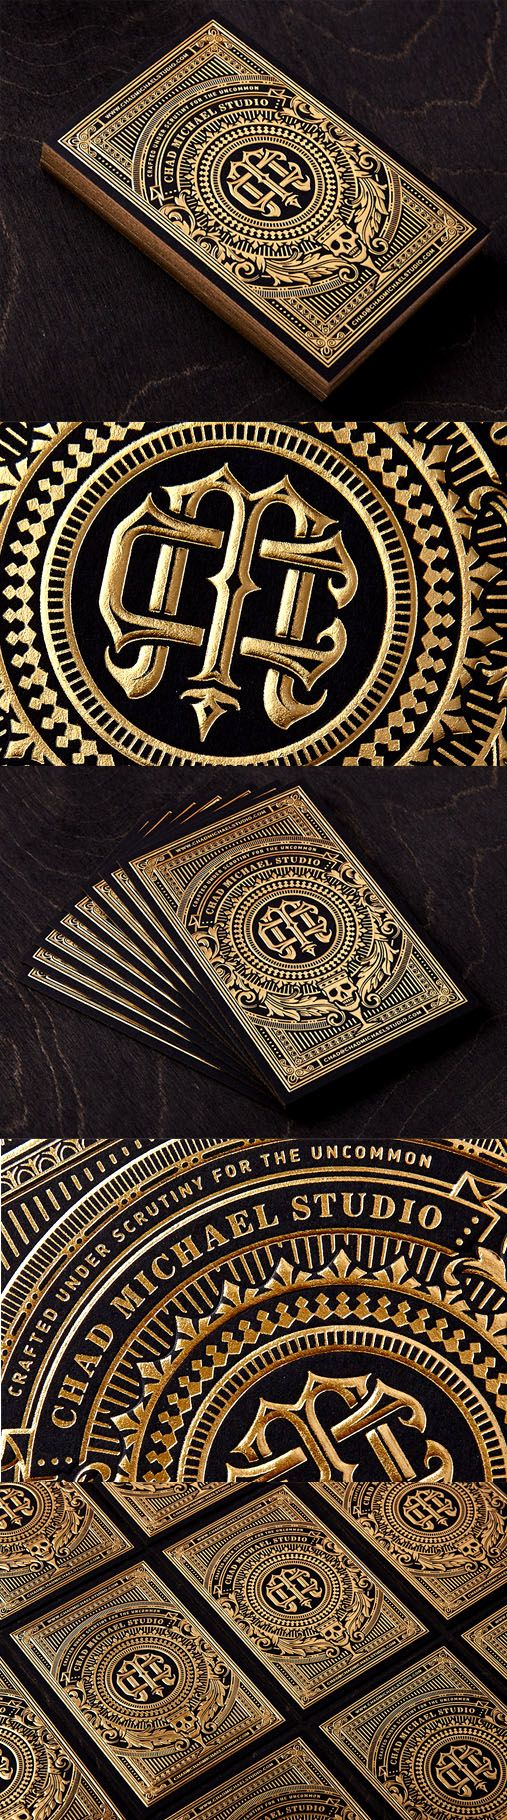 19 best cards images on Pinterest | Card deck, Decks and Playing cards